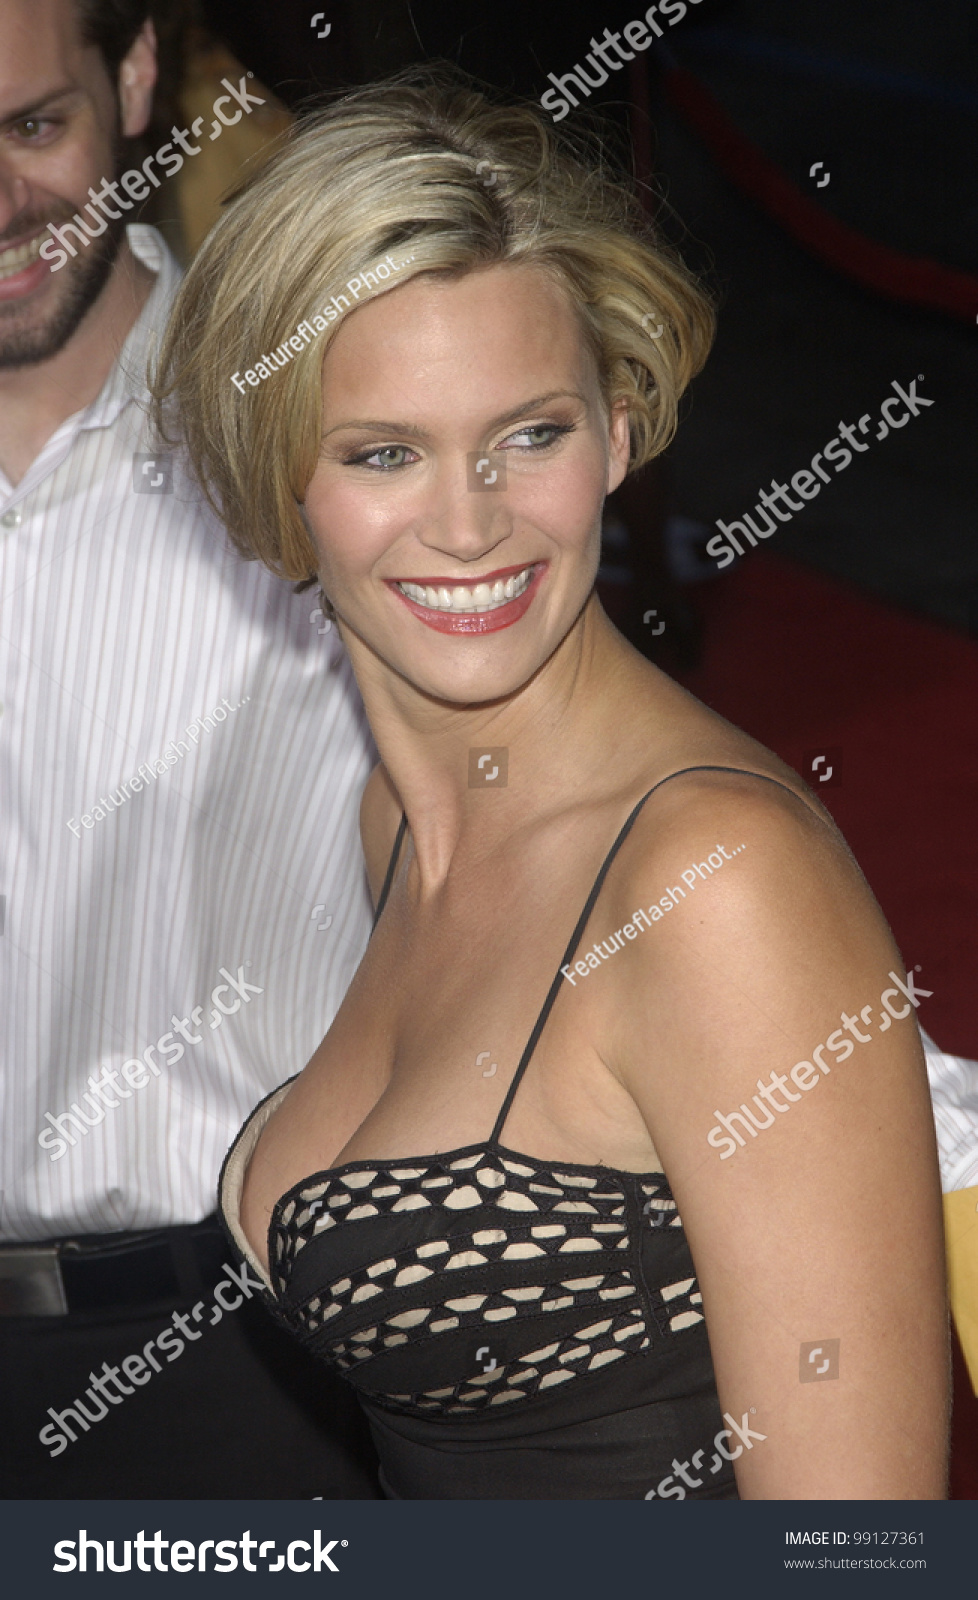 Fotos Natasha Henstridge naked (51 photos), Tits, Hot, Instagram, braless 2018